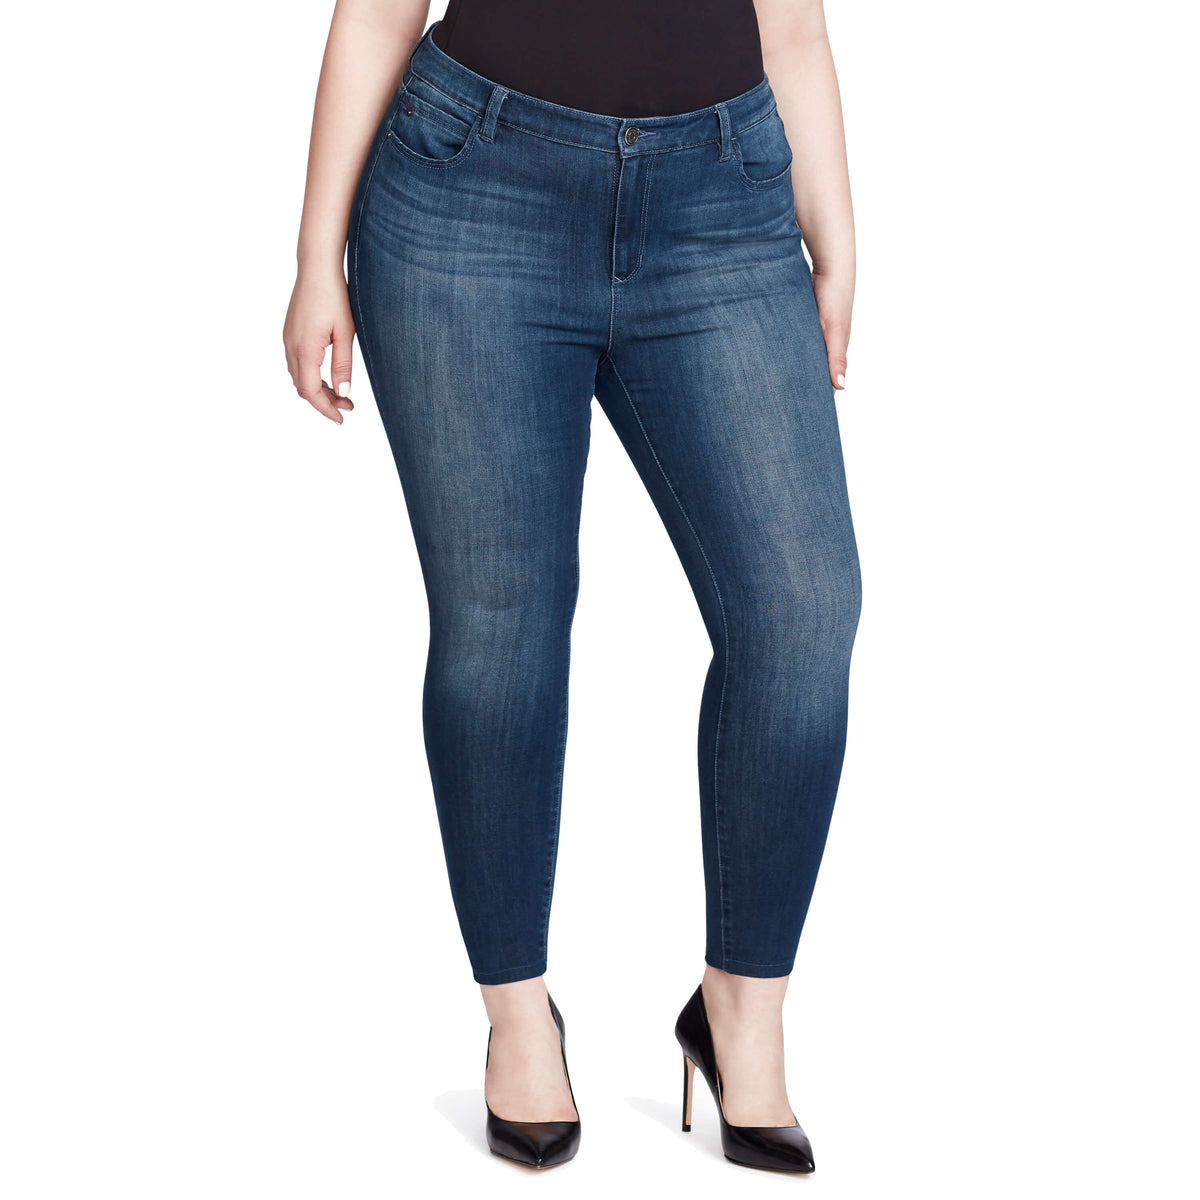 9aa91d83113 High-rise Skinny Ankle Jeans - Hudson (Plus) – Shop Skinnygirl